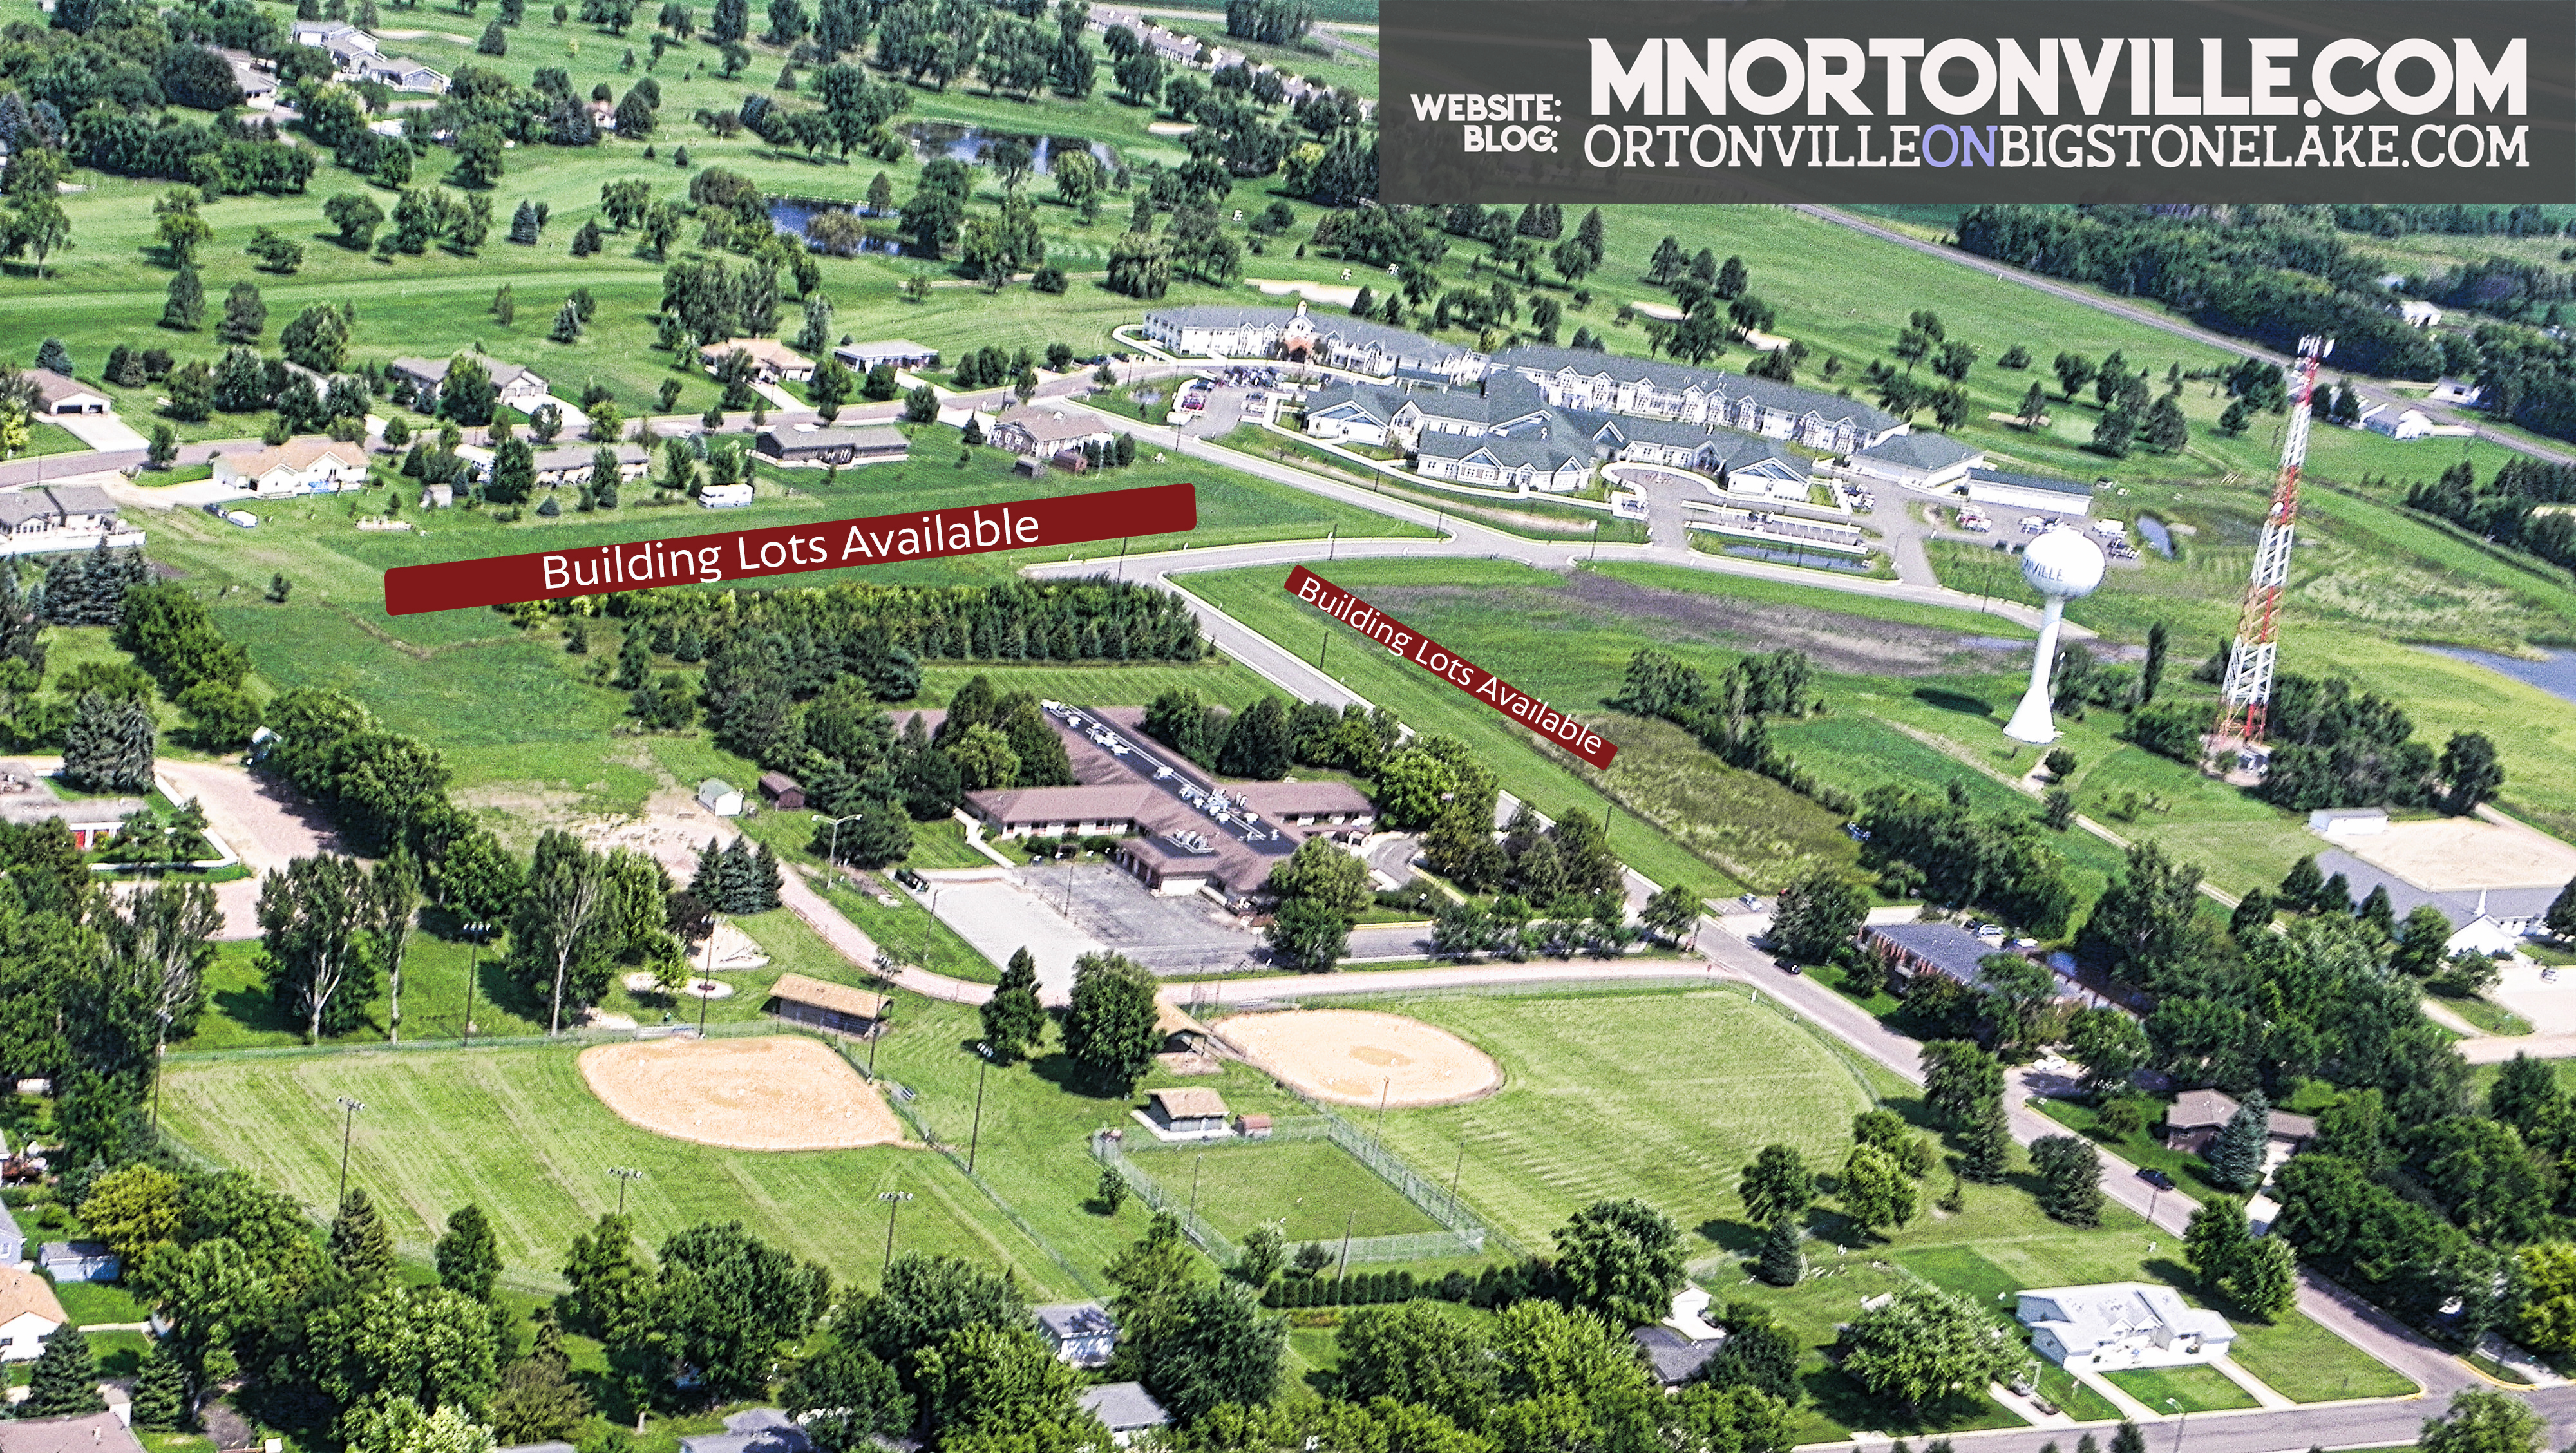 New Residential Lots Available in Ortonville